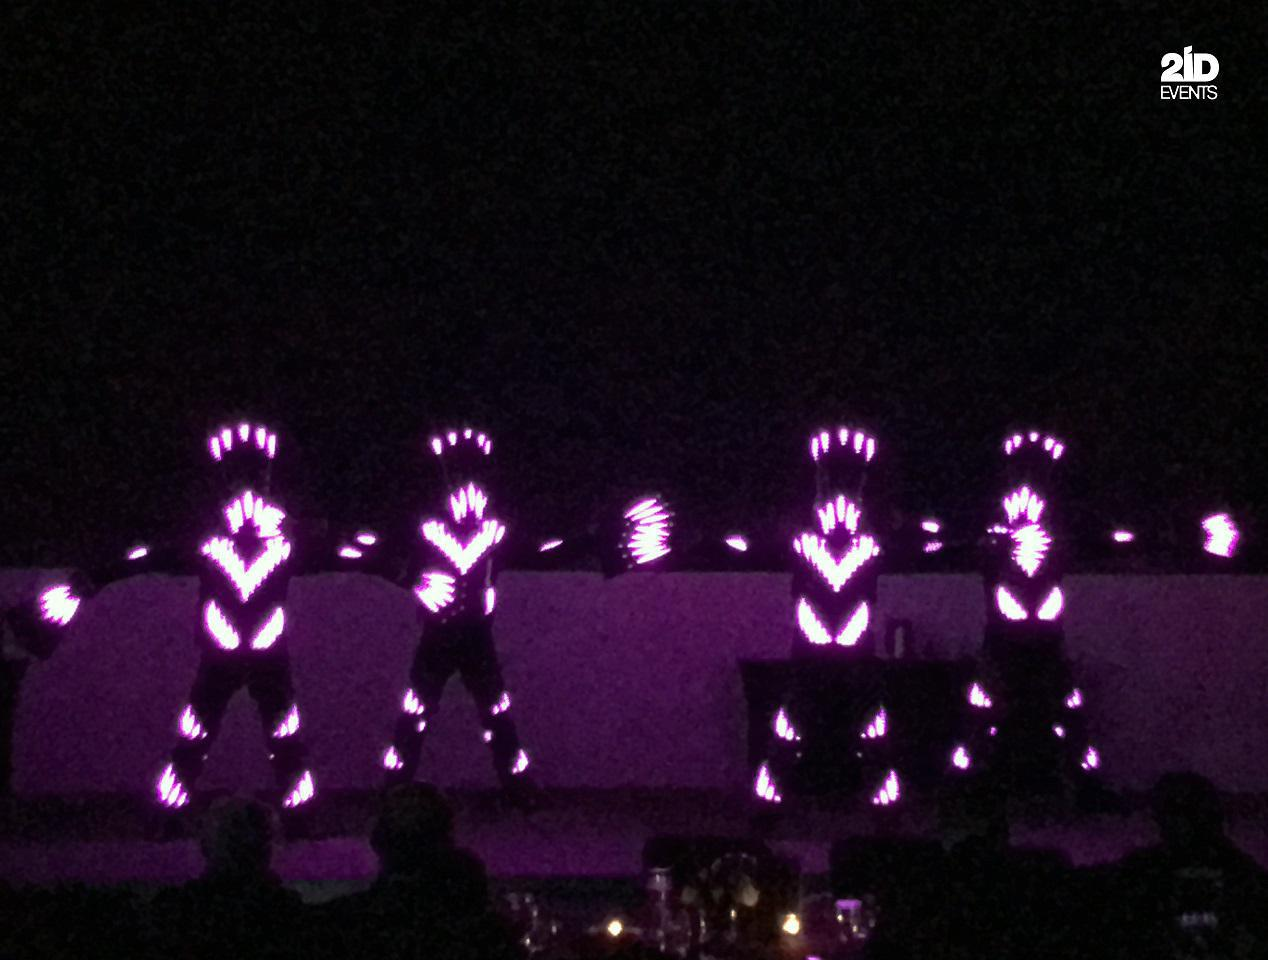 EL WIRE SHOW FOR THE GALA DINNER